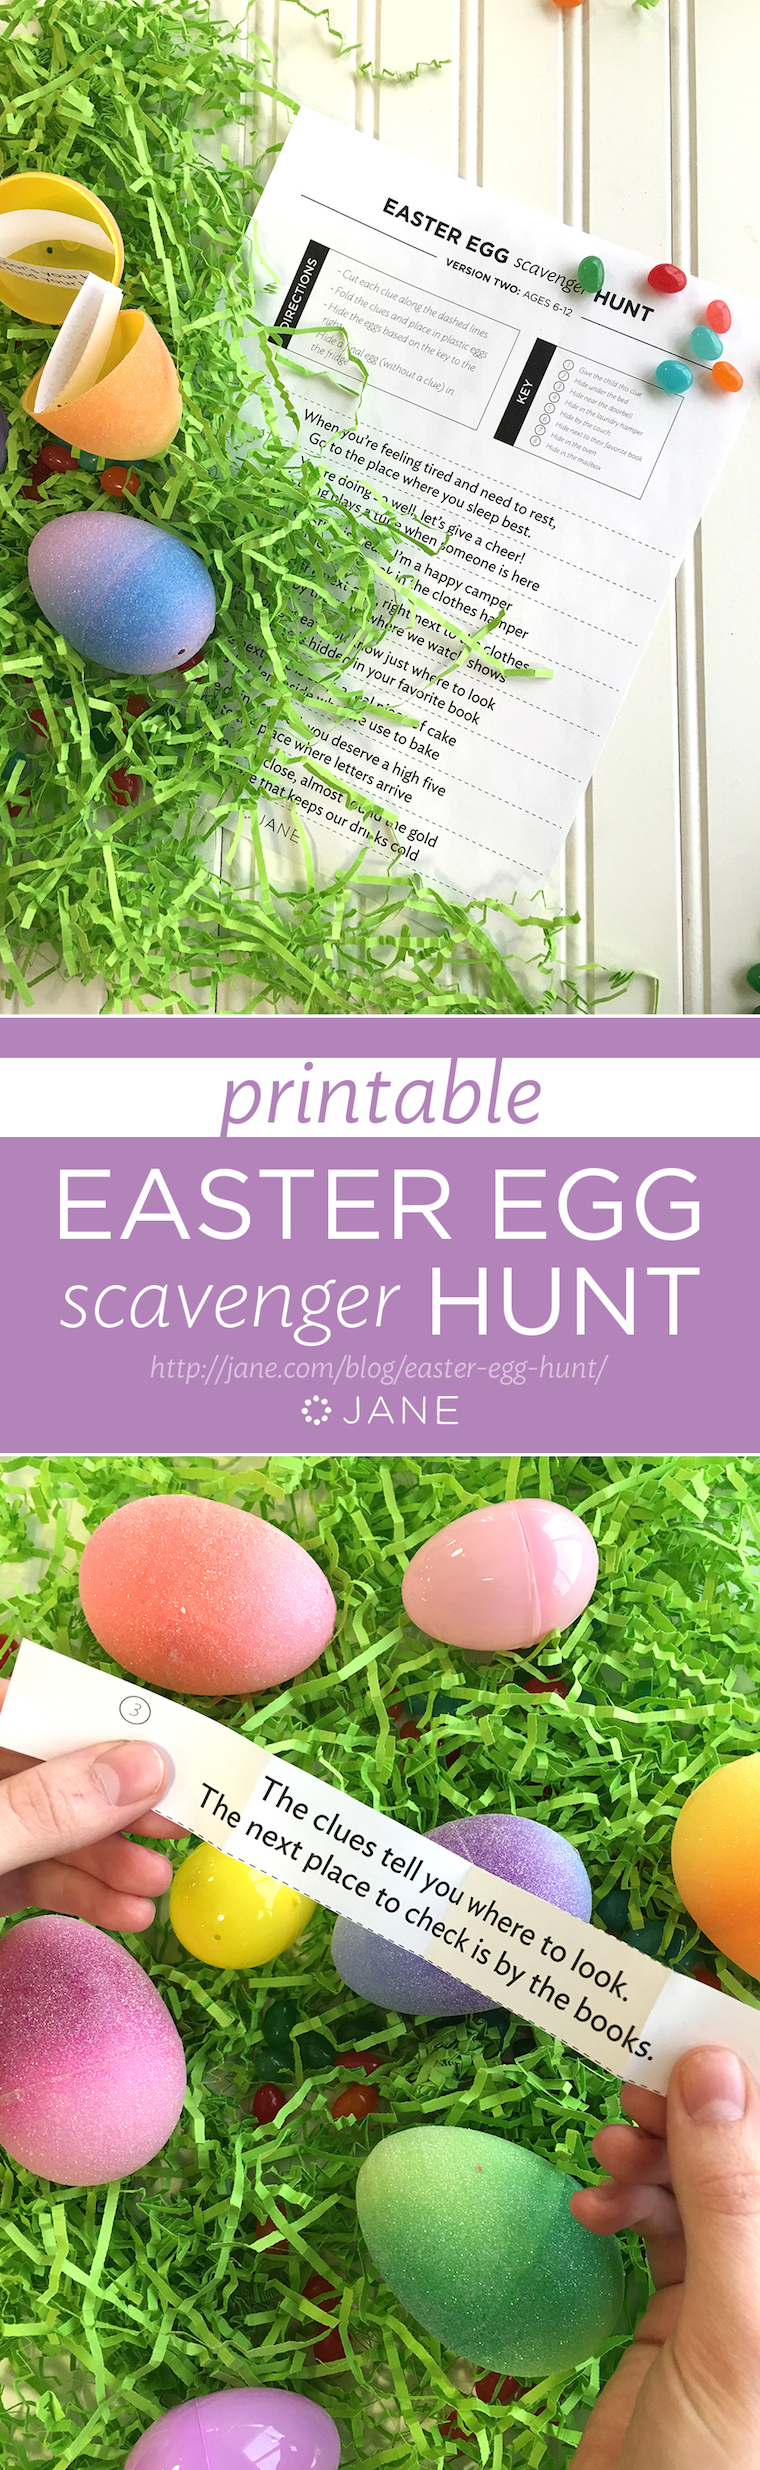 Get your Free Printable! Easter Egg Scavenger Hunt on Jane.com/Blog. We've done the hardwork for you. All you need to do is download, cut, hide, and enjoy watching your littles have fun on Easter Morning!